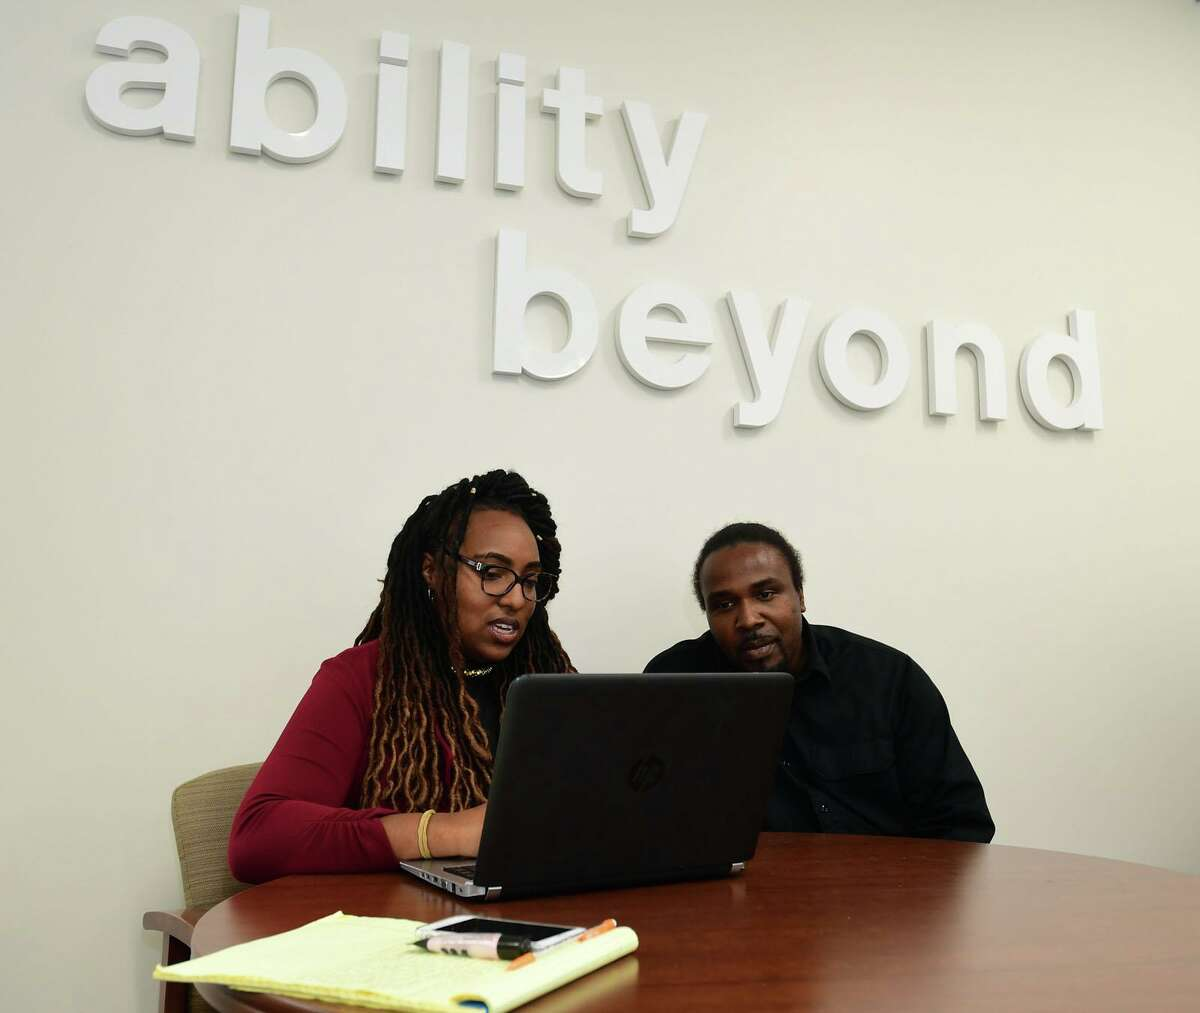 Employment Specialist Chenelle helps client Earl Melton at The Bethel-based disabilities services giant, Ability Beyond facility in Norwalk, Conn.